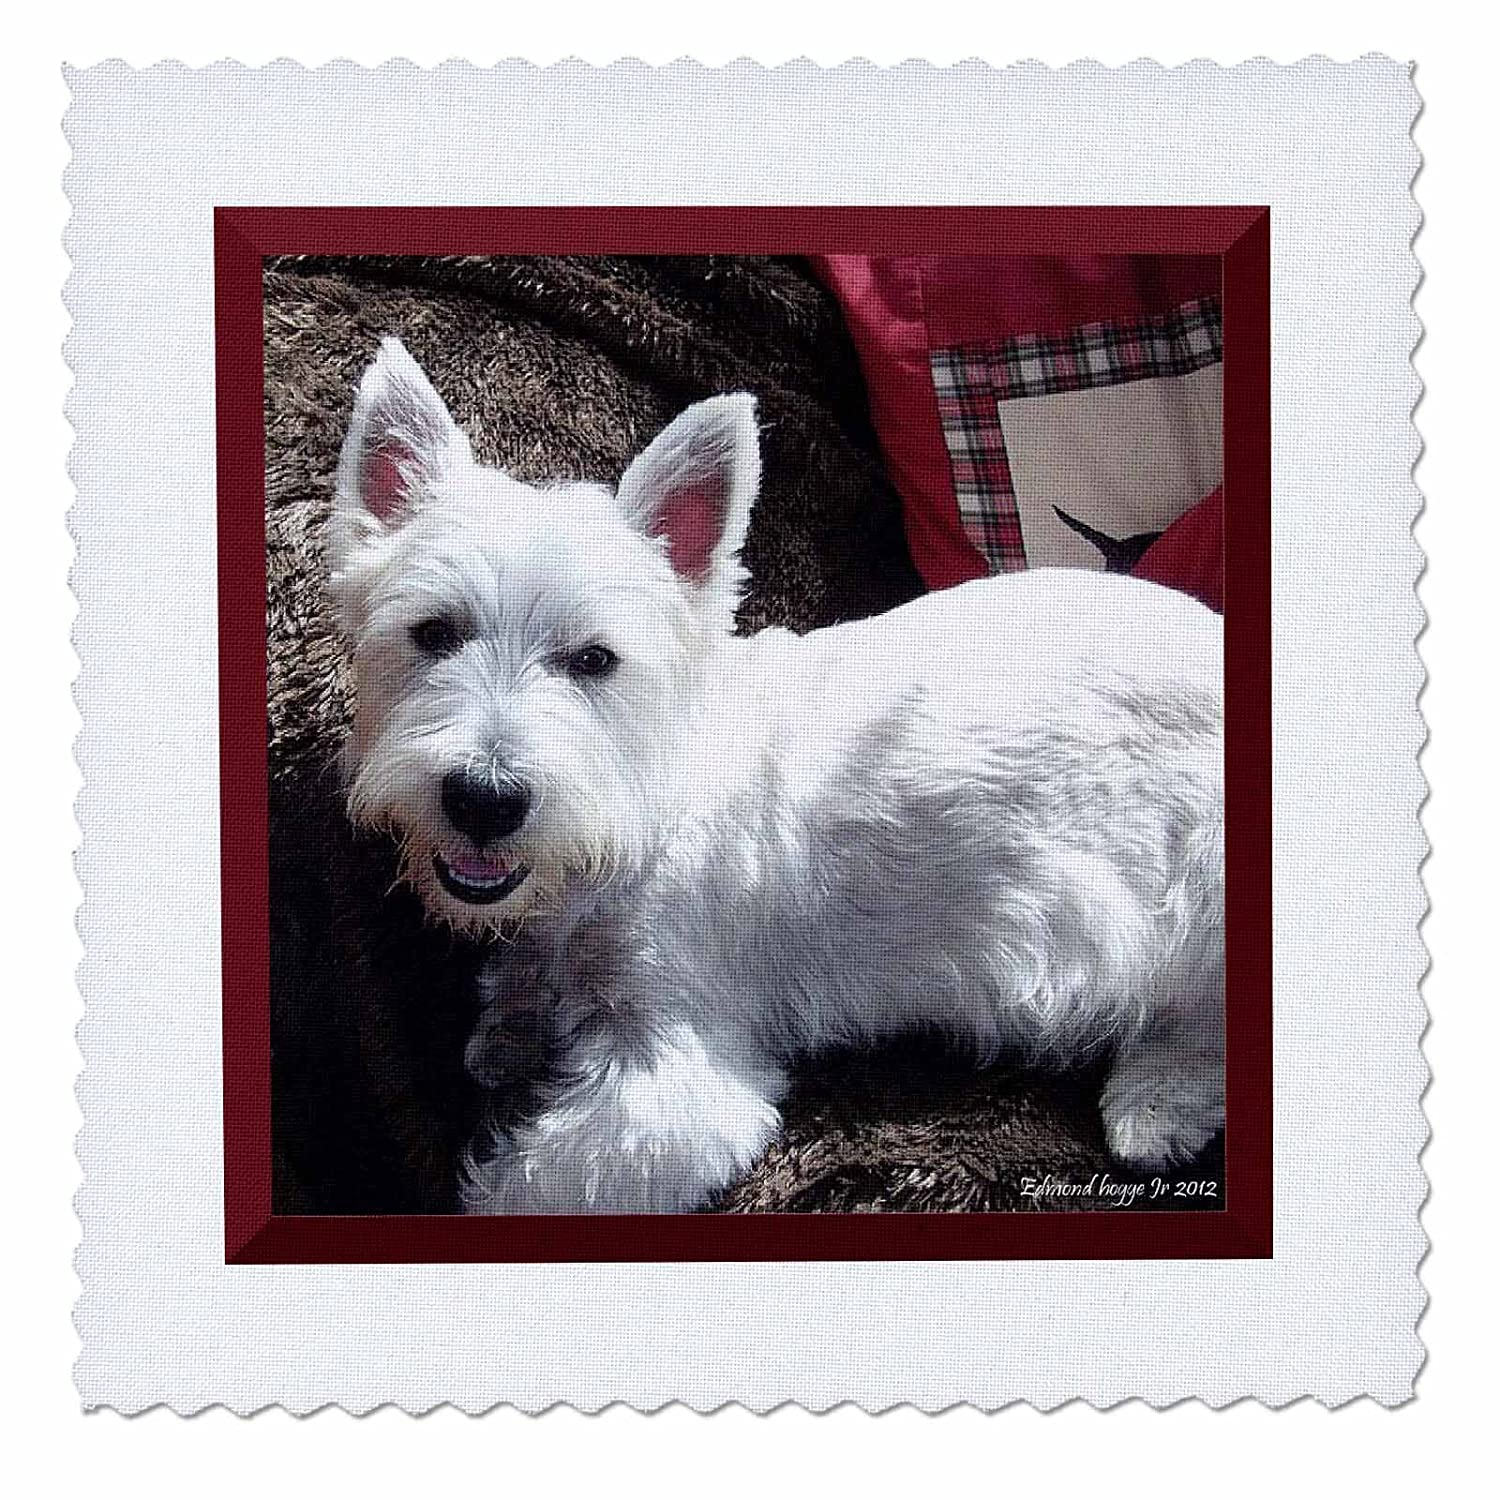 10 by 10-Inch 3dRose qs/_39514/_1 West Highland White Terrier Quilt Square